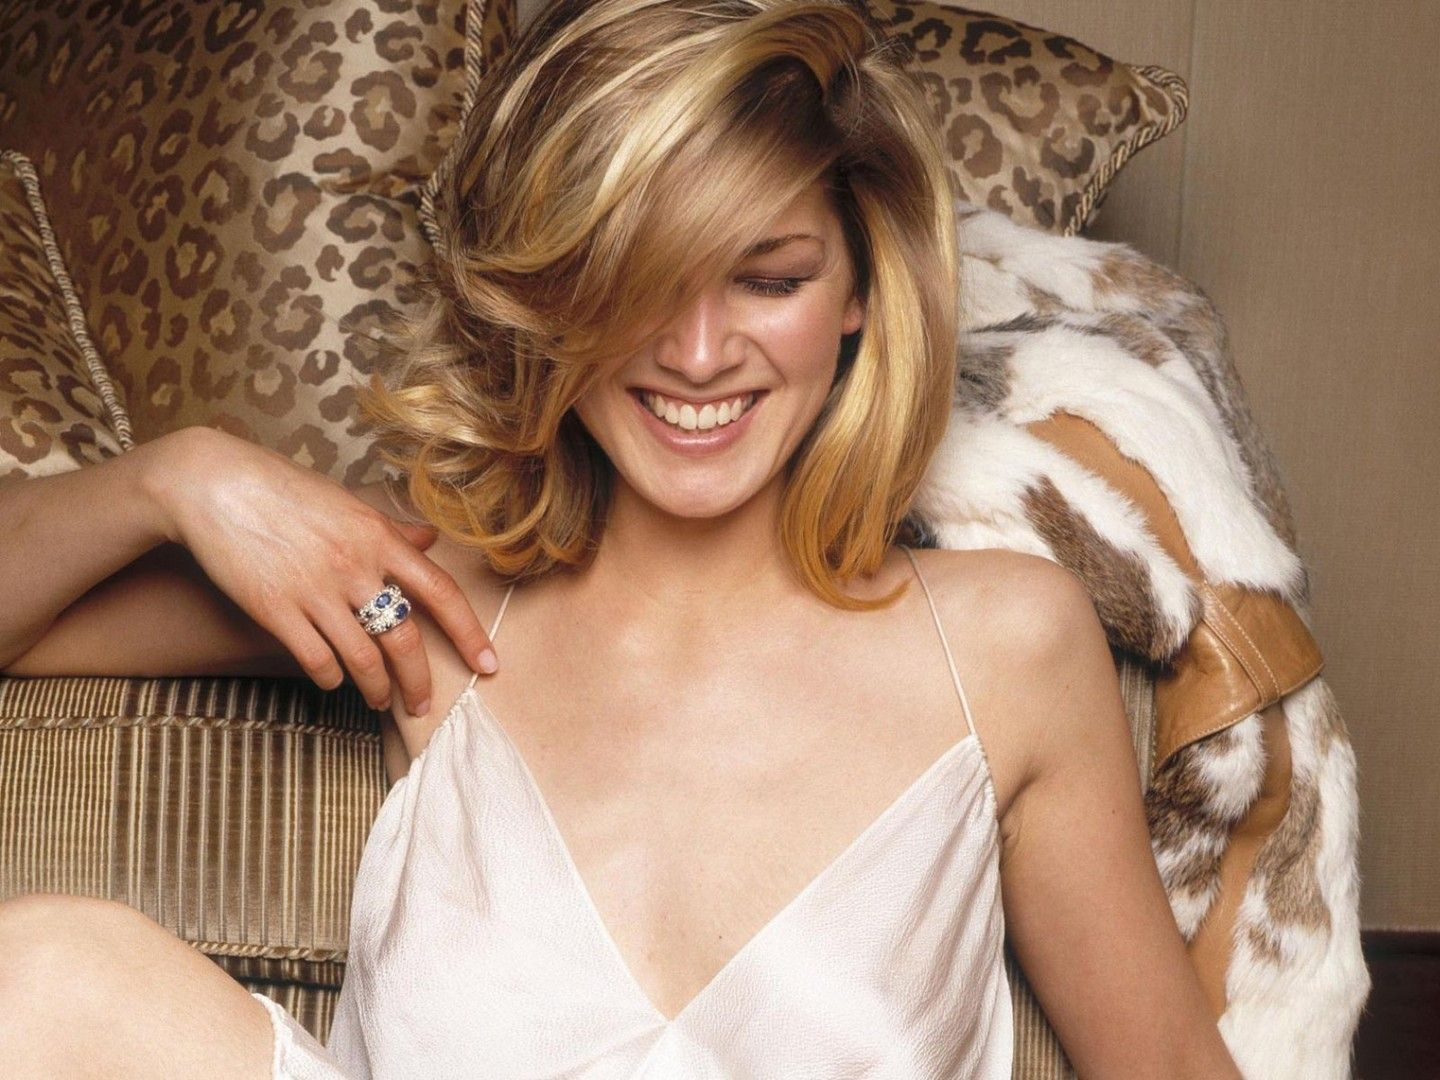 1440x1080 - Rosamund Pike Wallpapers 12